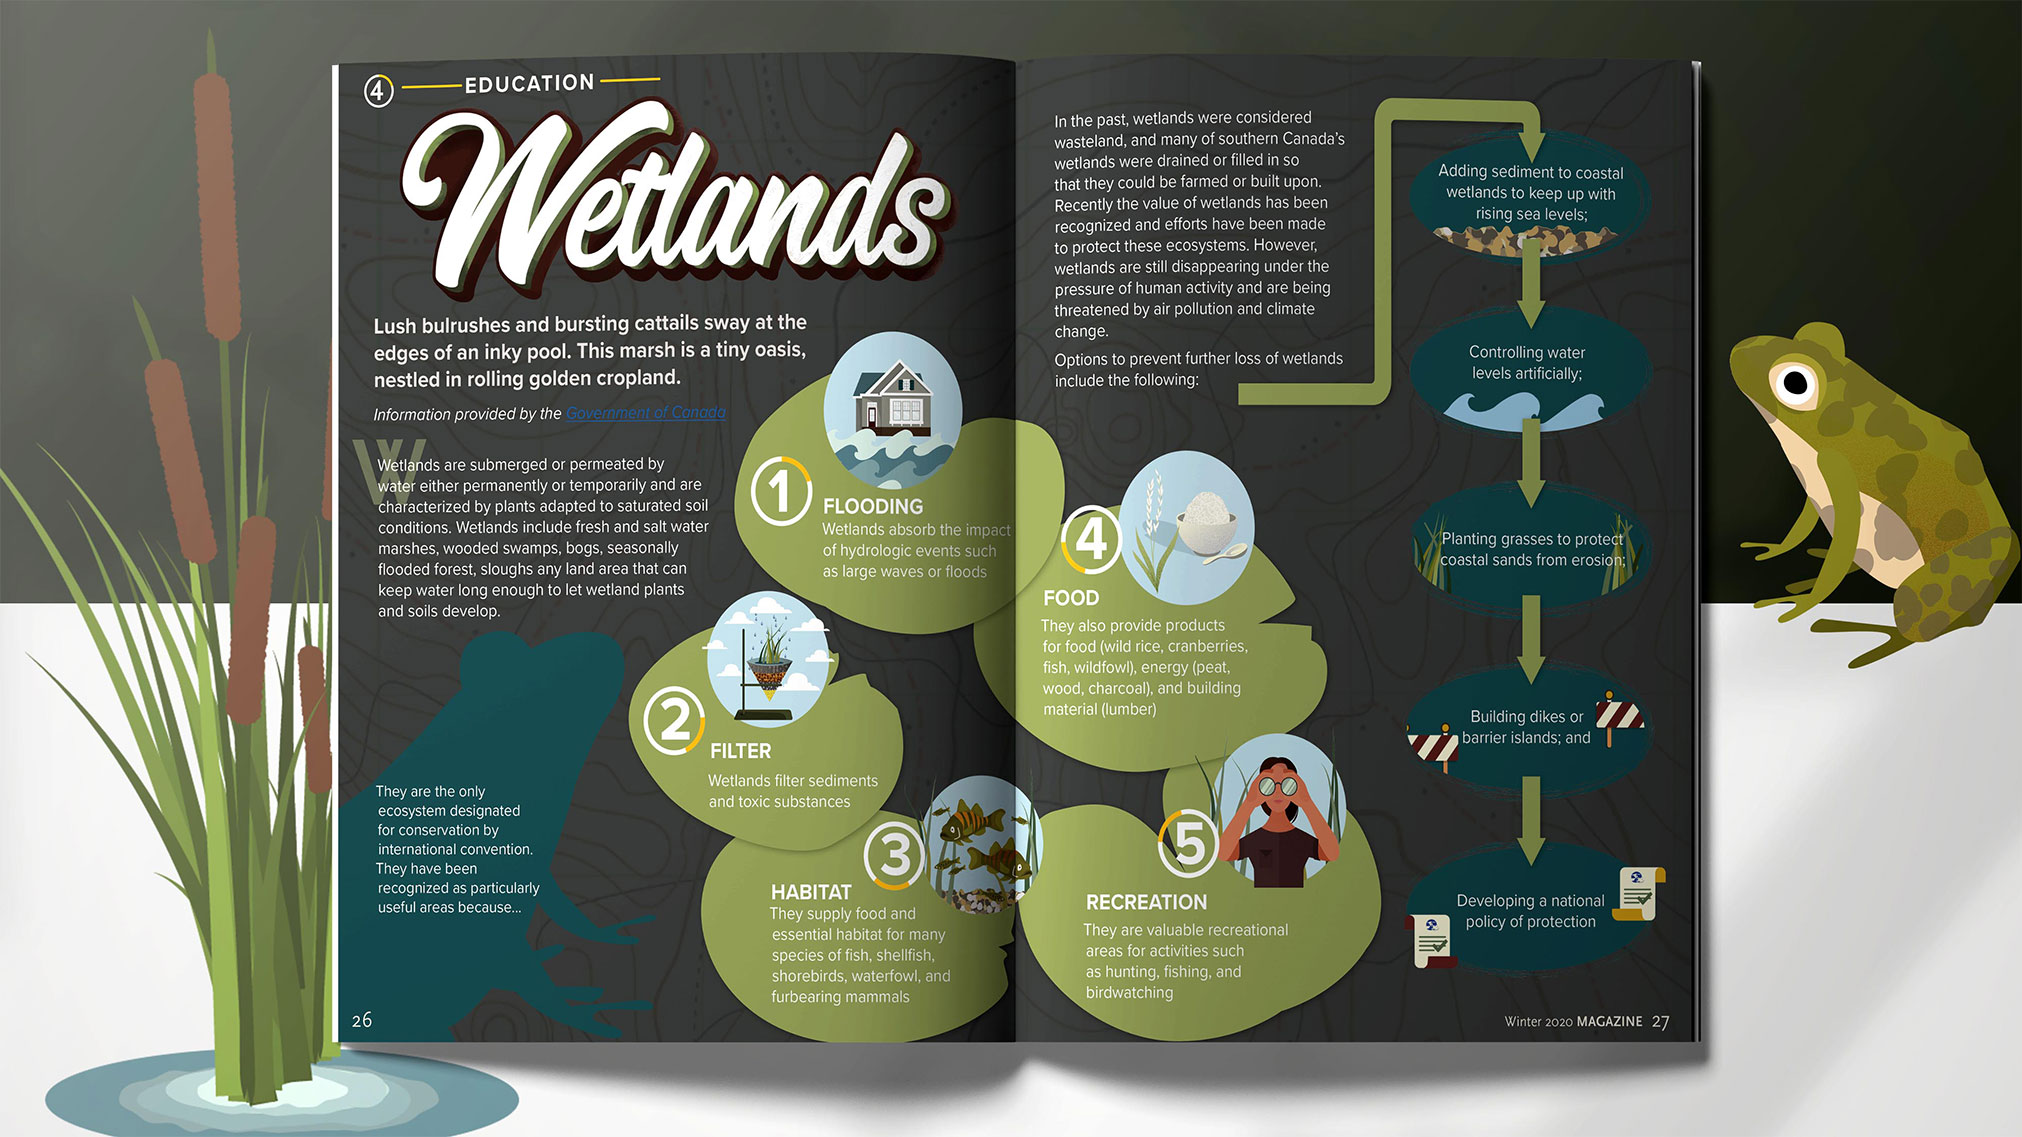 This project depicts an interactive PDF and a short animated explainer video. The content was based on the information found on the Government of Canada website.